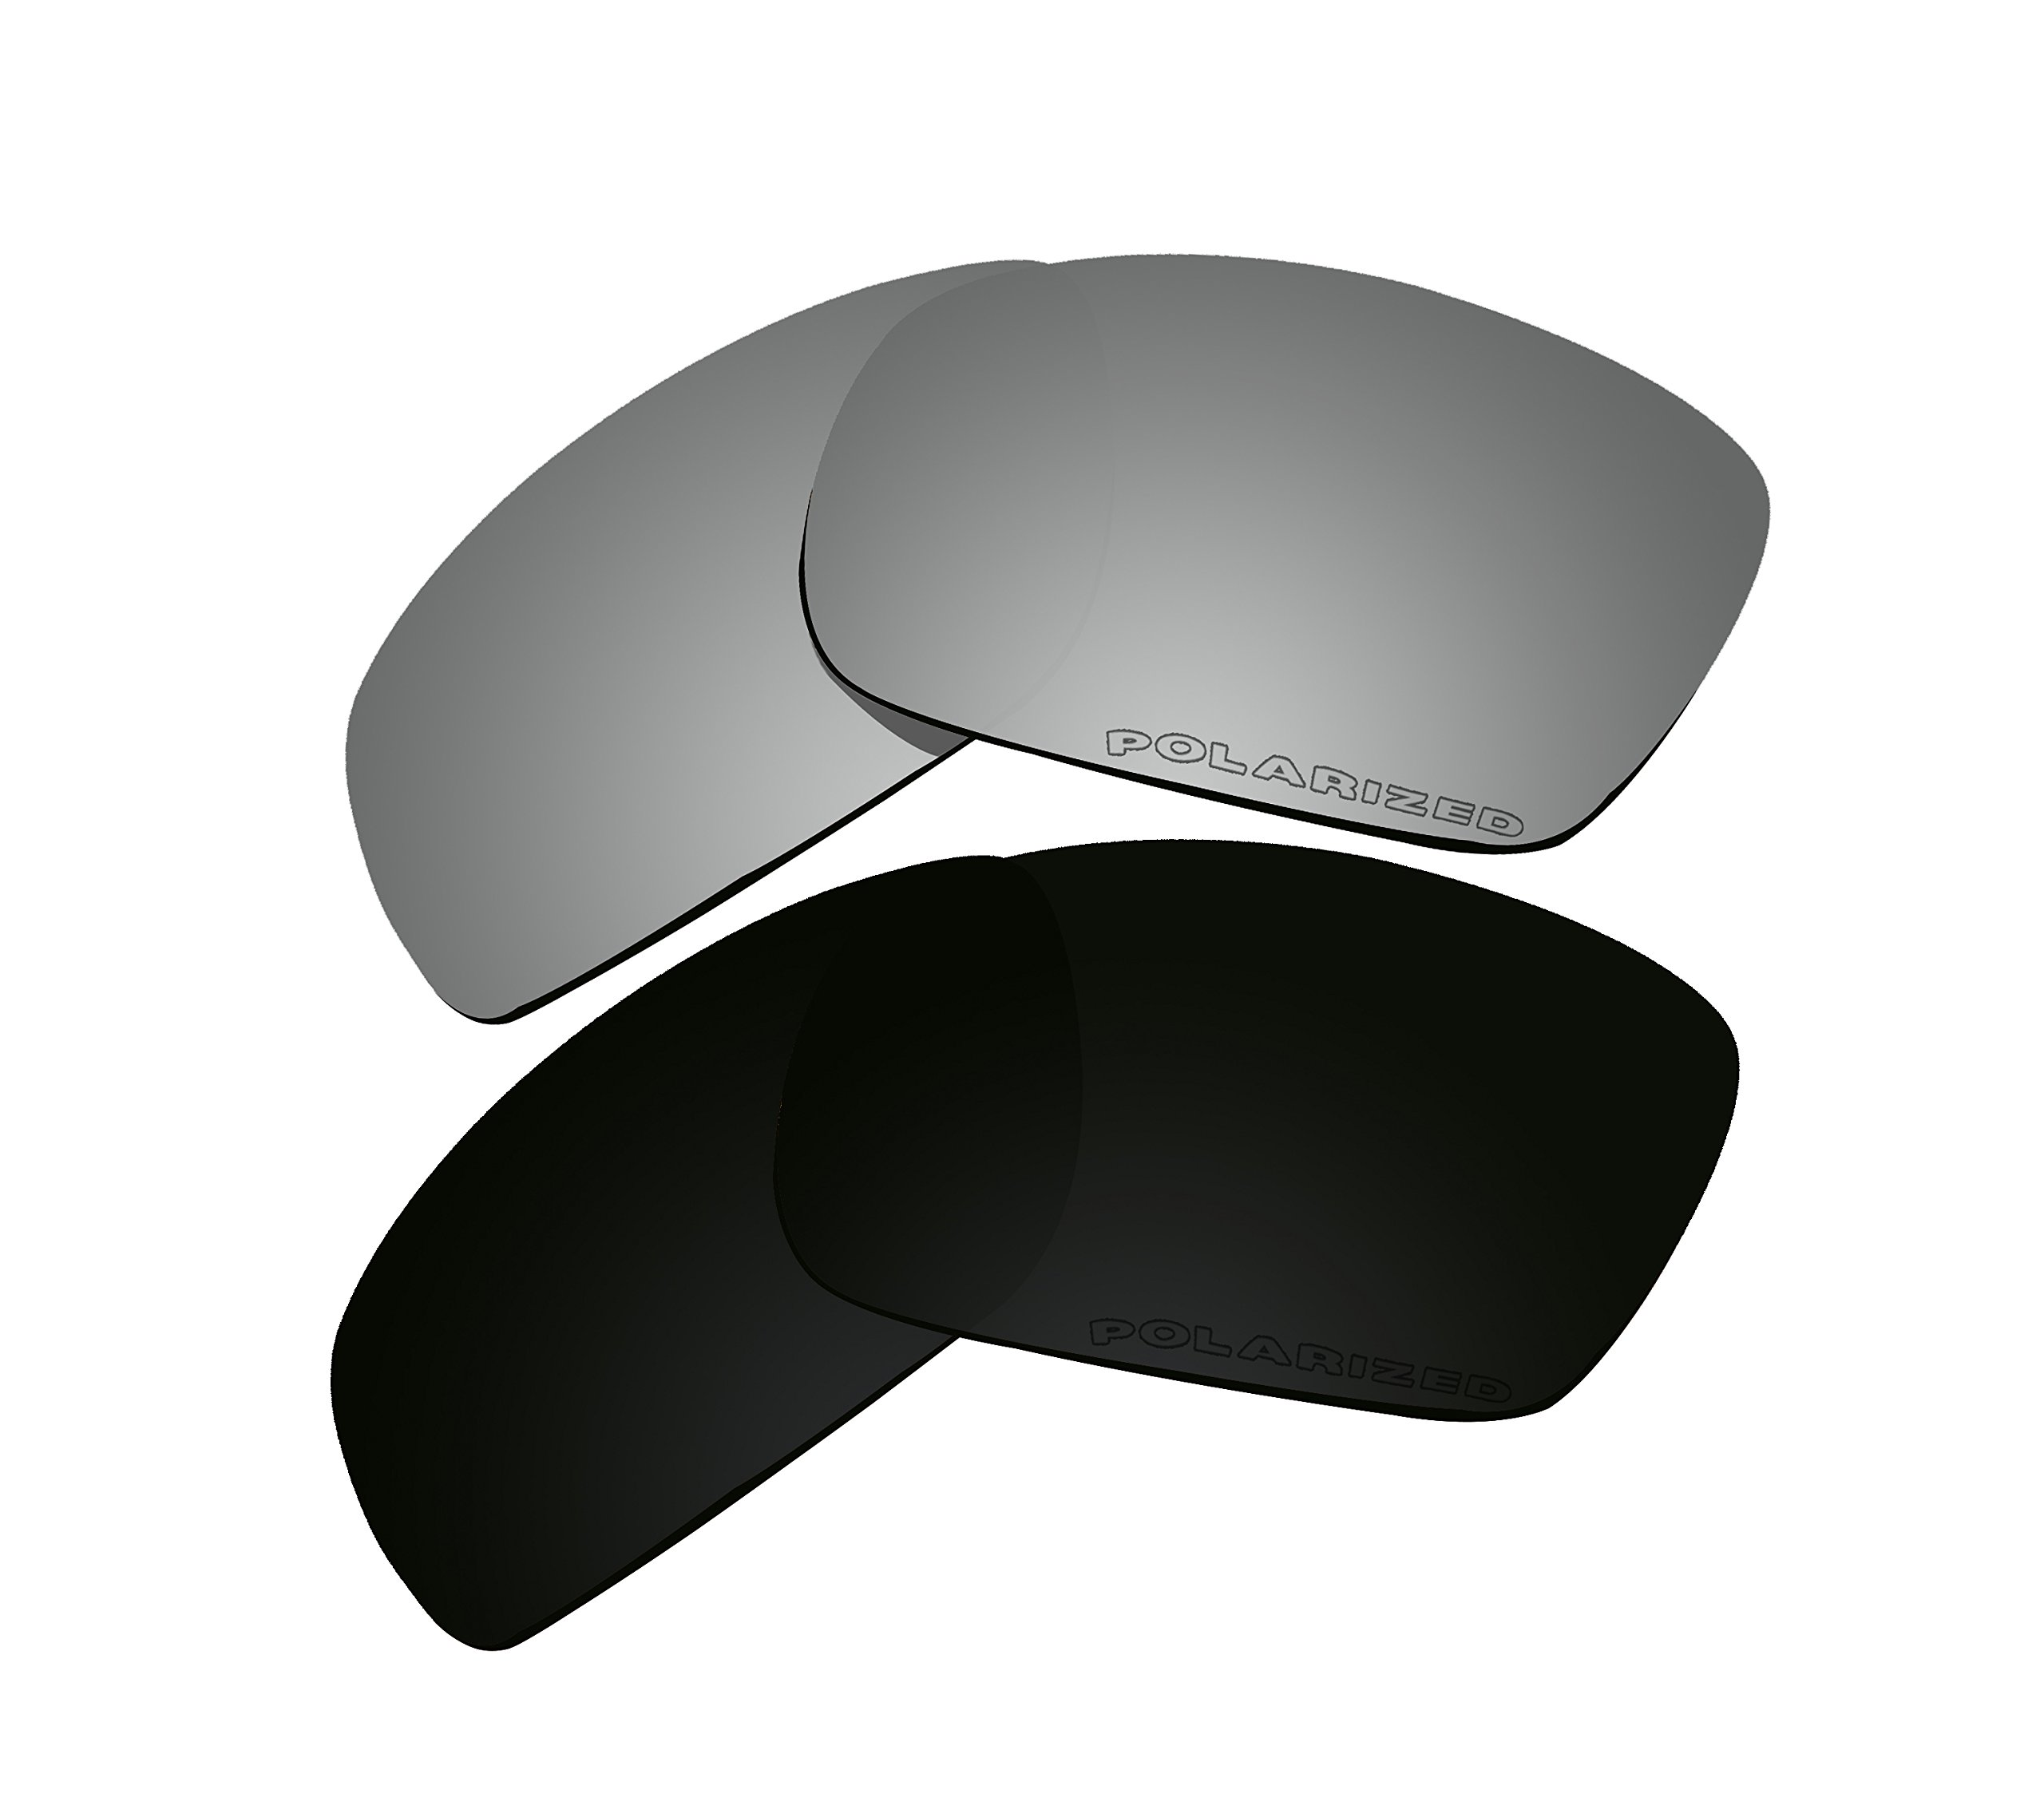 2 Pairs Polarized Lenses Replacement Black & Black Iridium for Oakley Fives Squared New (2013) OO9238 Sunglasses